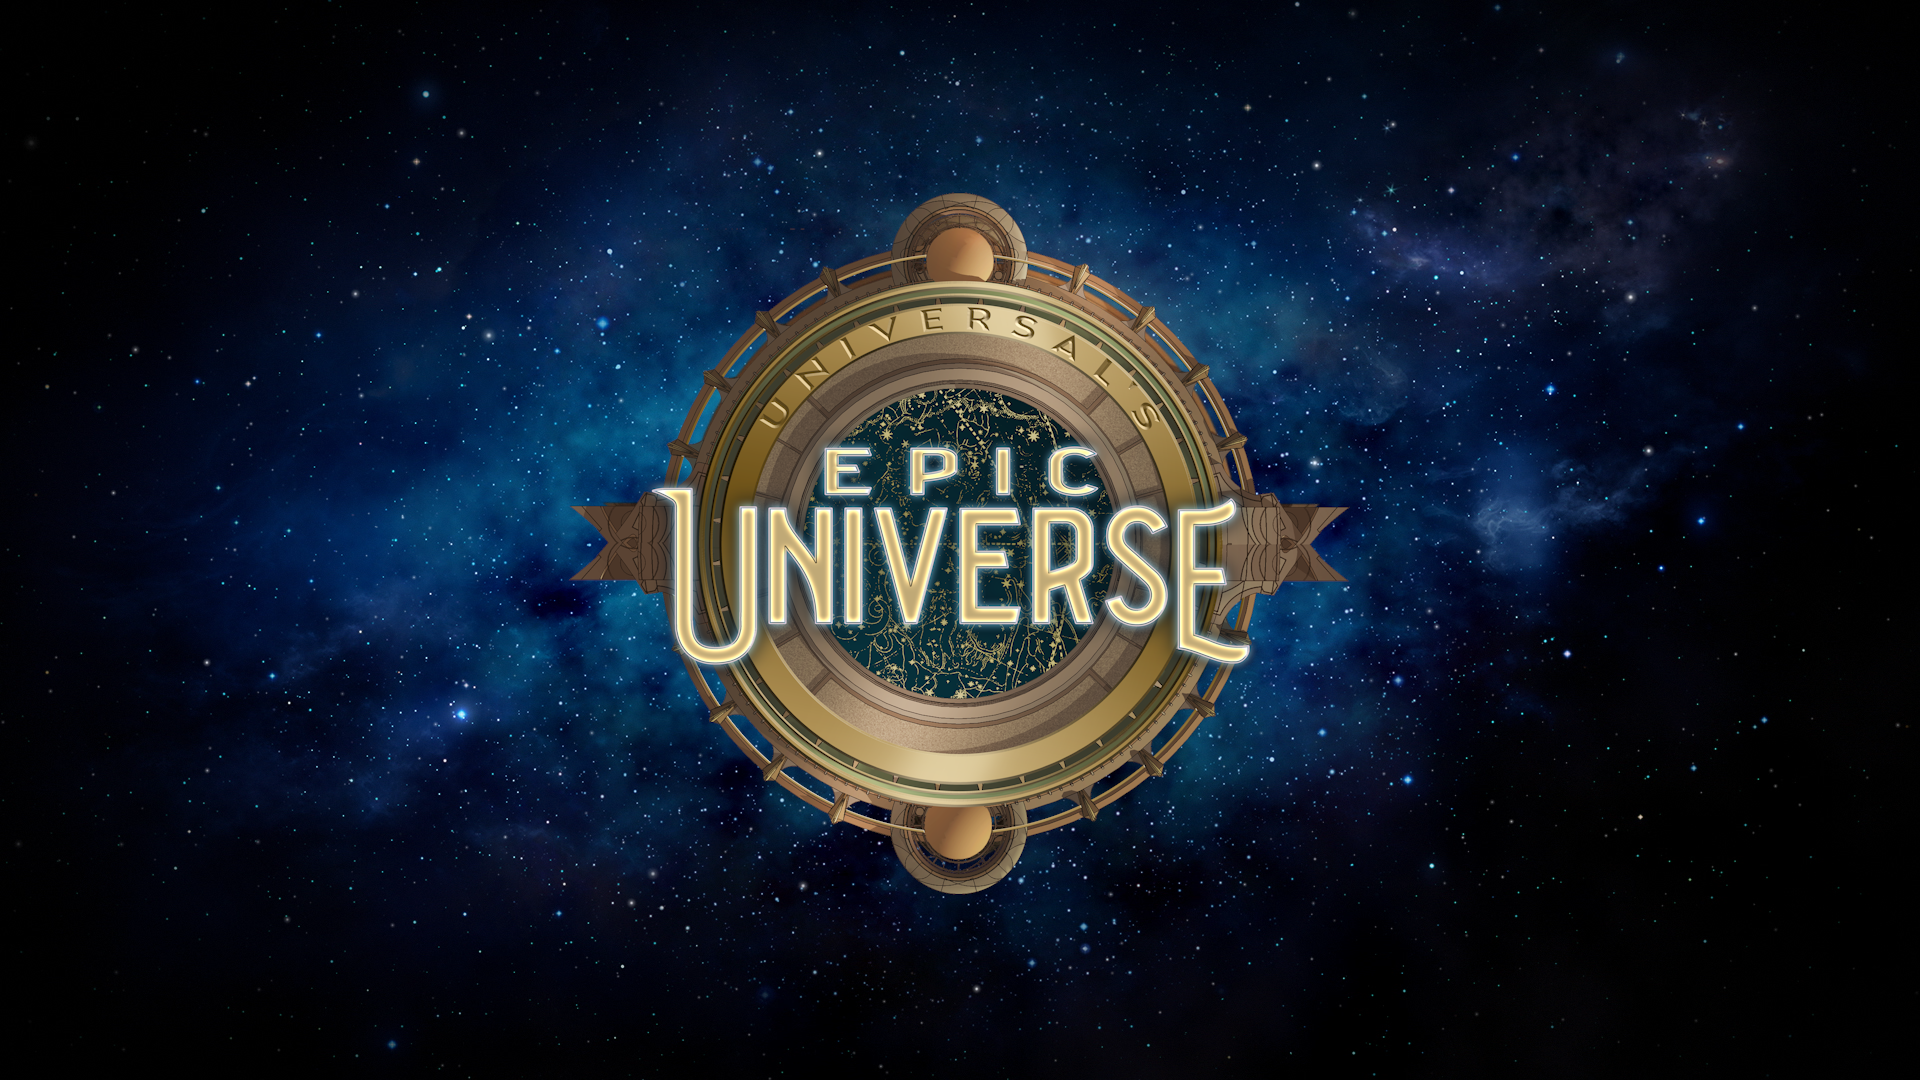 [News] Universal Orlando Announces New Theme Park